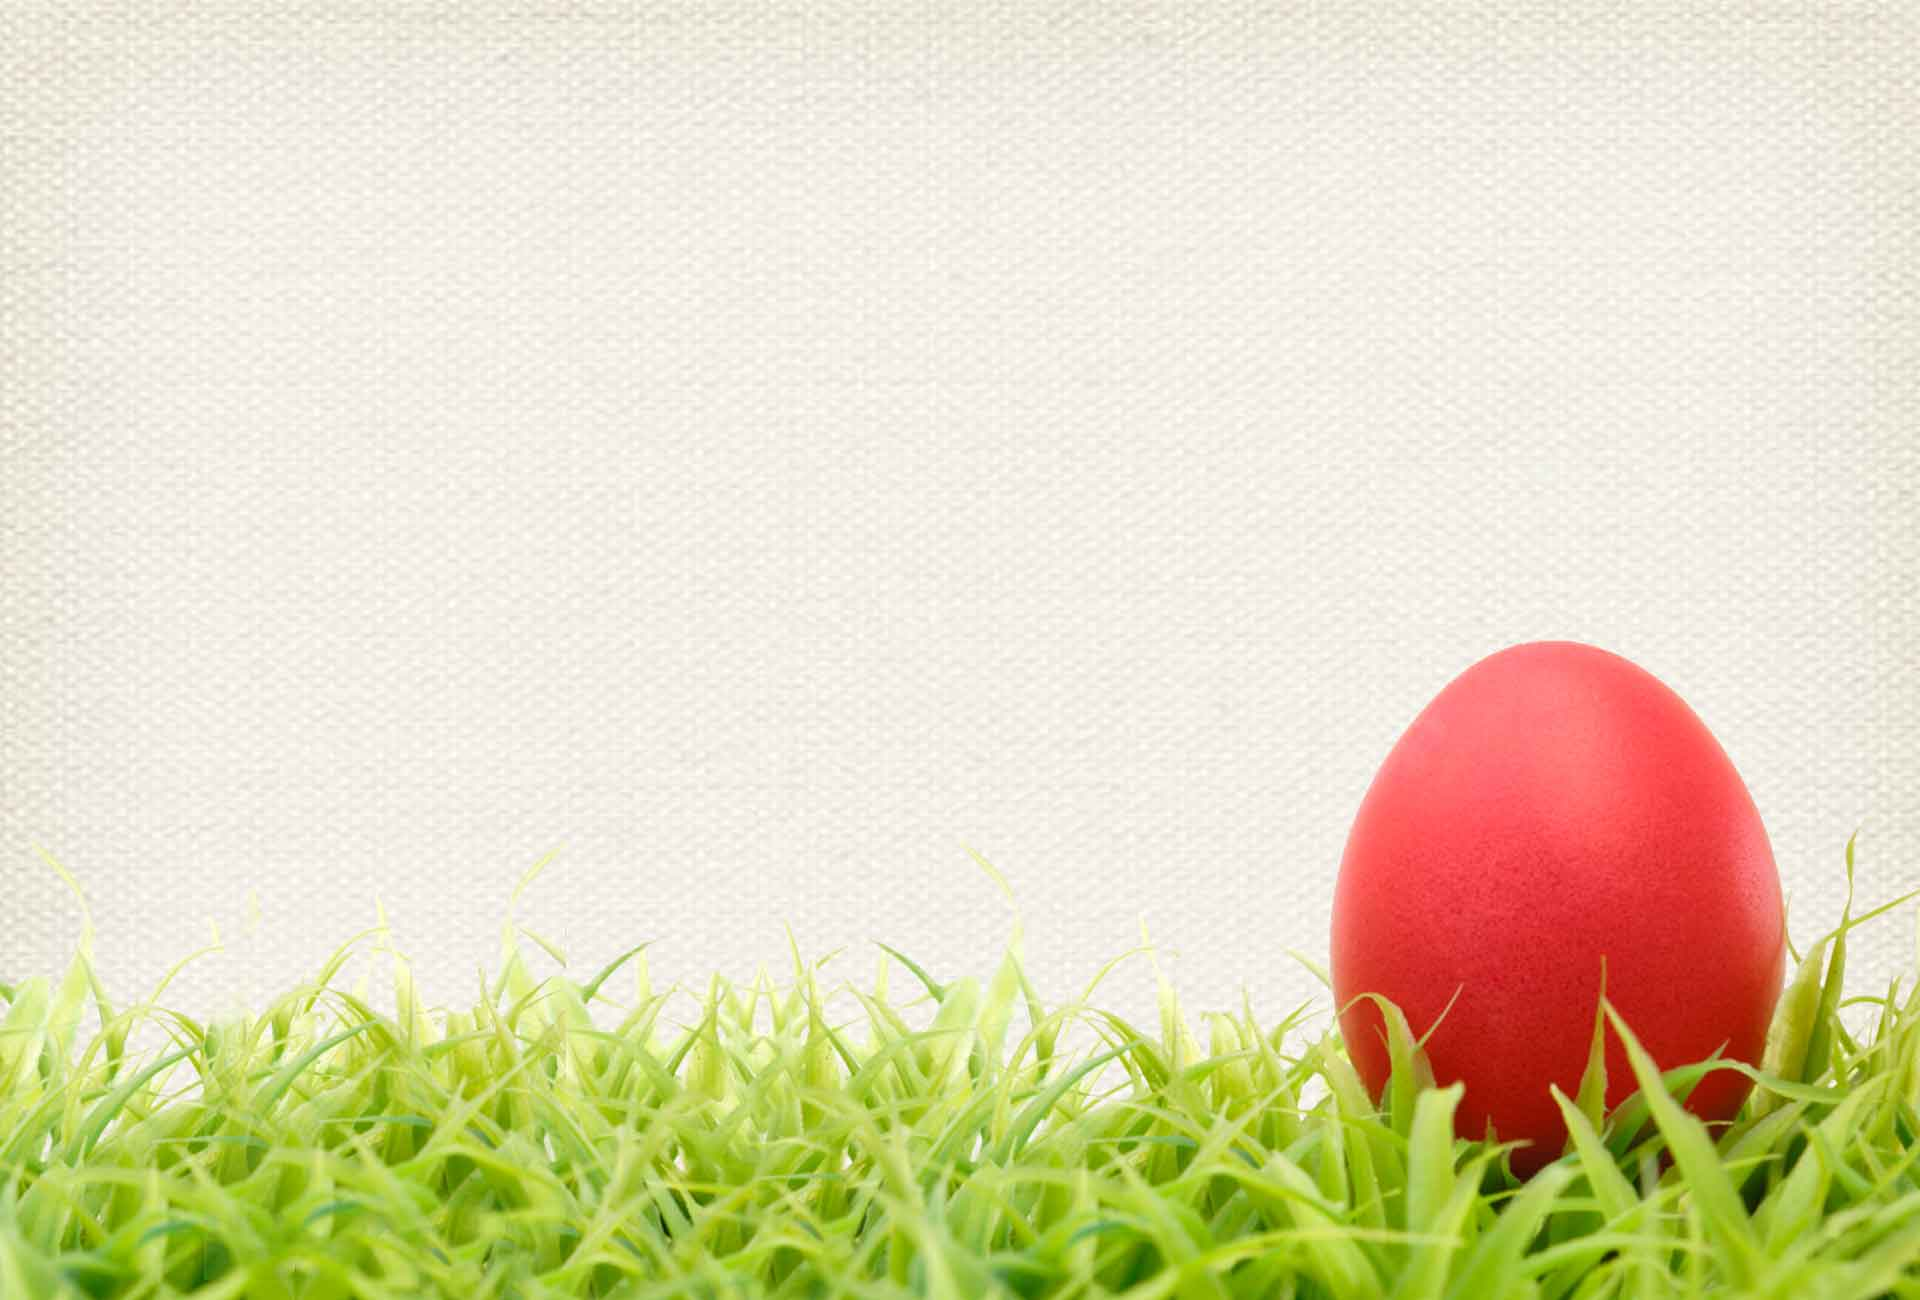 Easter Background Pictures Images amp Photos  Photobucket